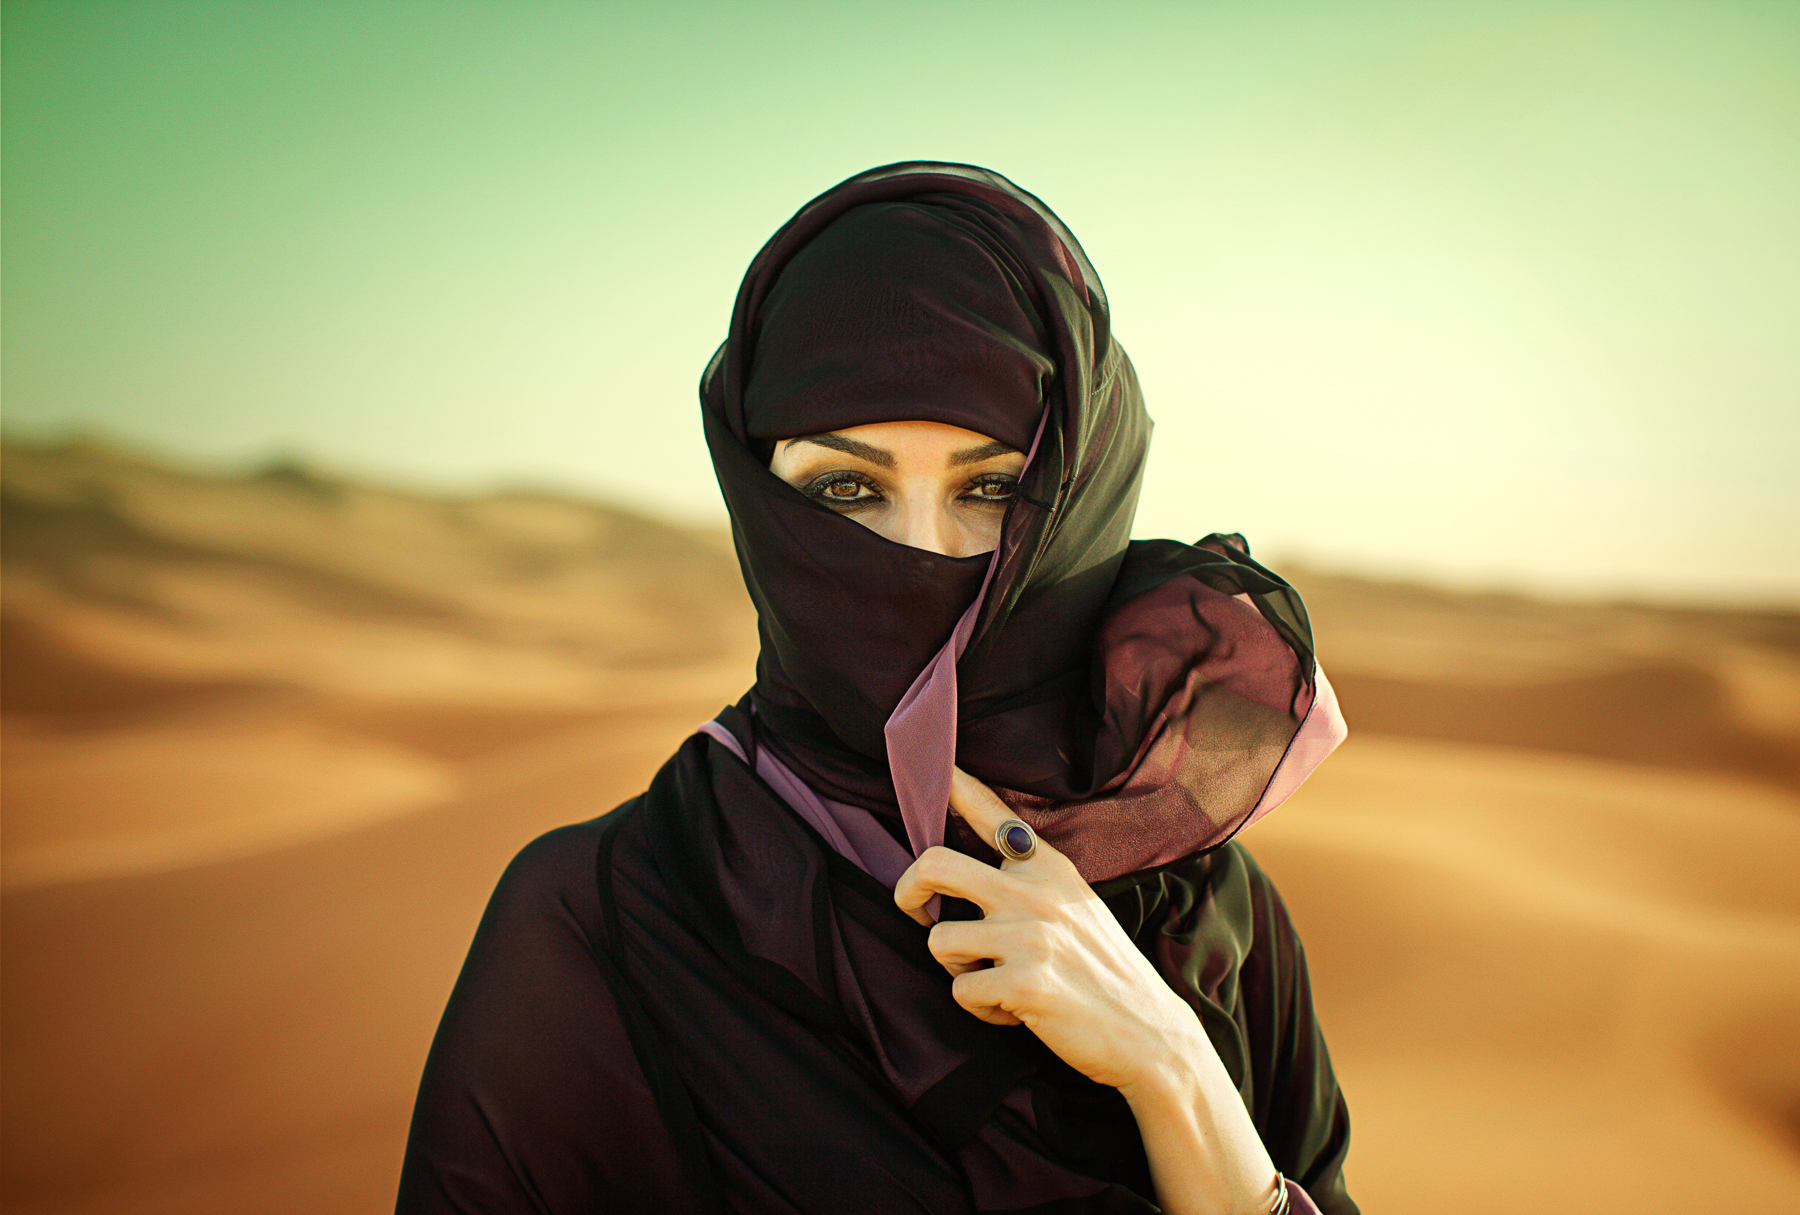 Woman in the Desert in a Hijab